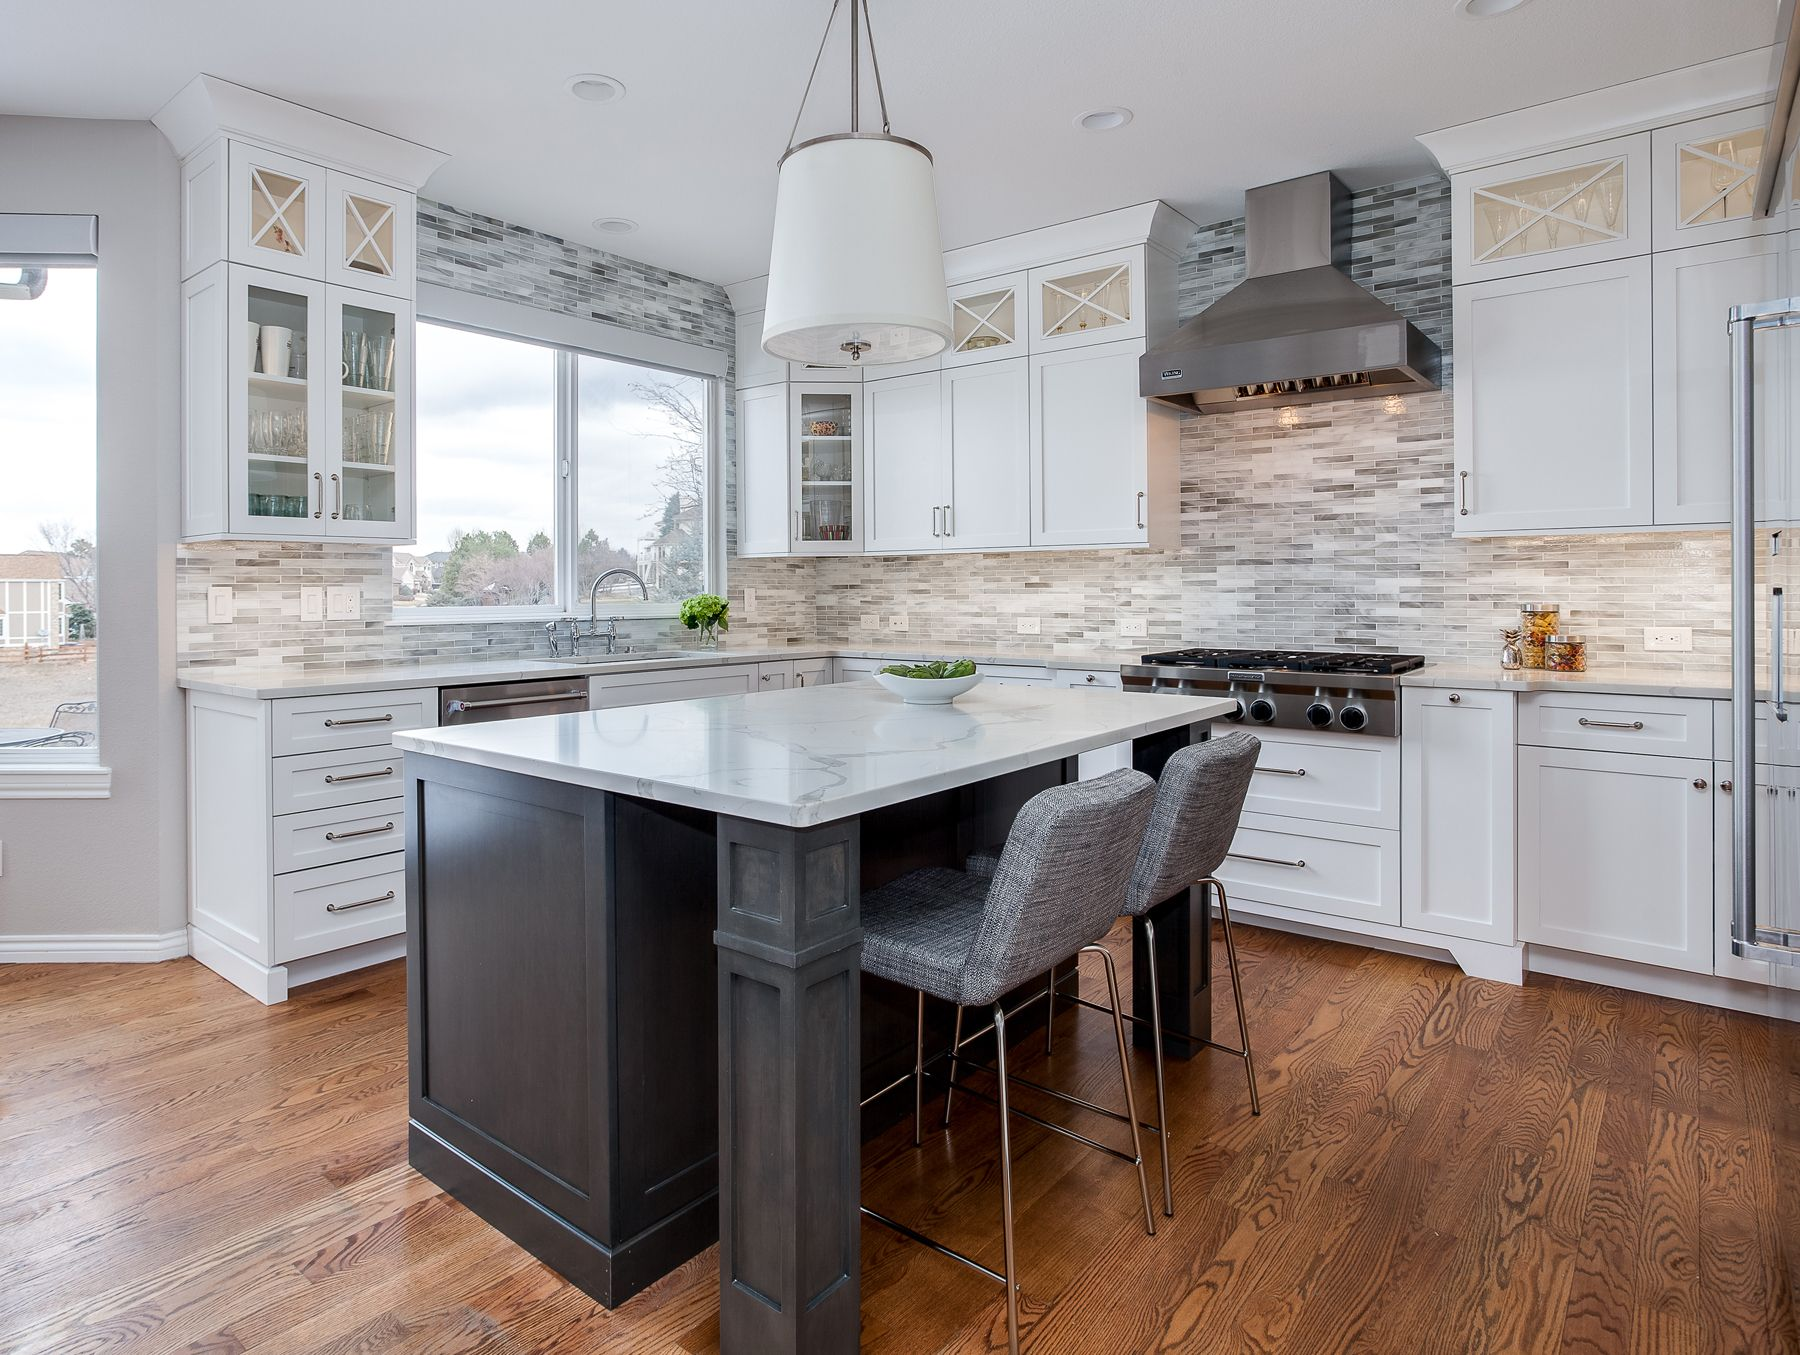 Painted Vs Stained Cabinets Jm Kitchen And Bath Https Www Jmwoodworks Com Painted Vs S Kitchen Remodel Kitchen Cabinet Remodel Semi Custom Kitchen Cabinets